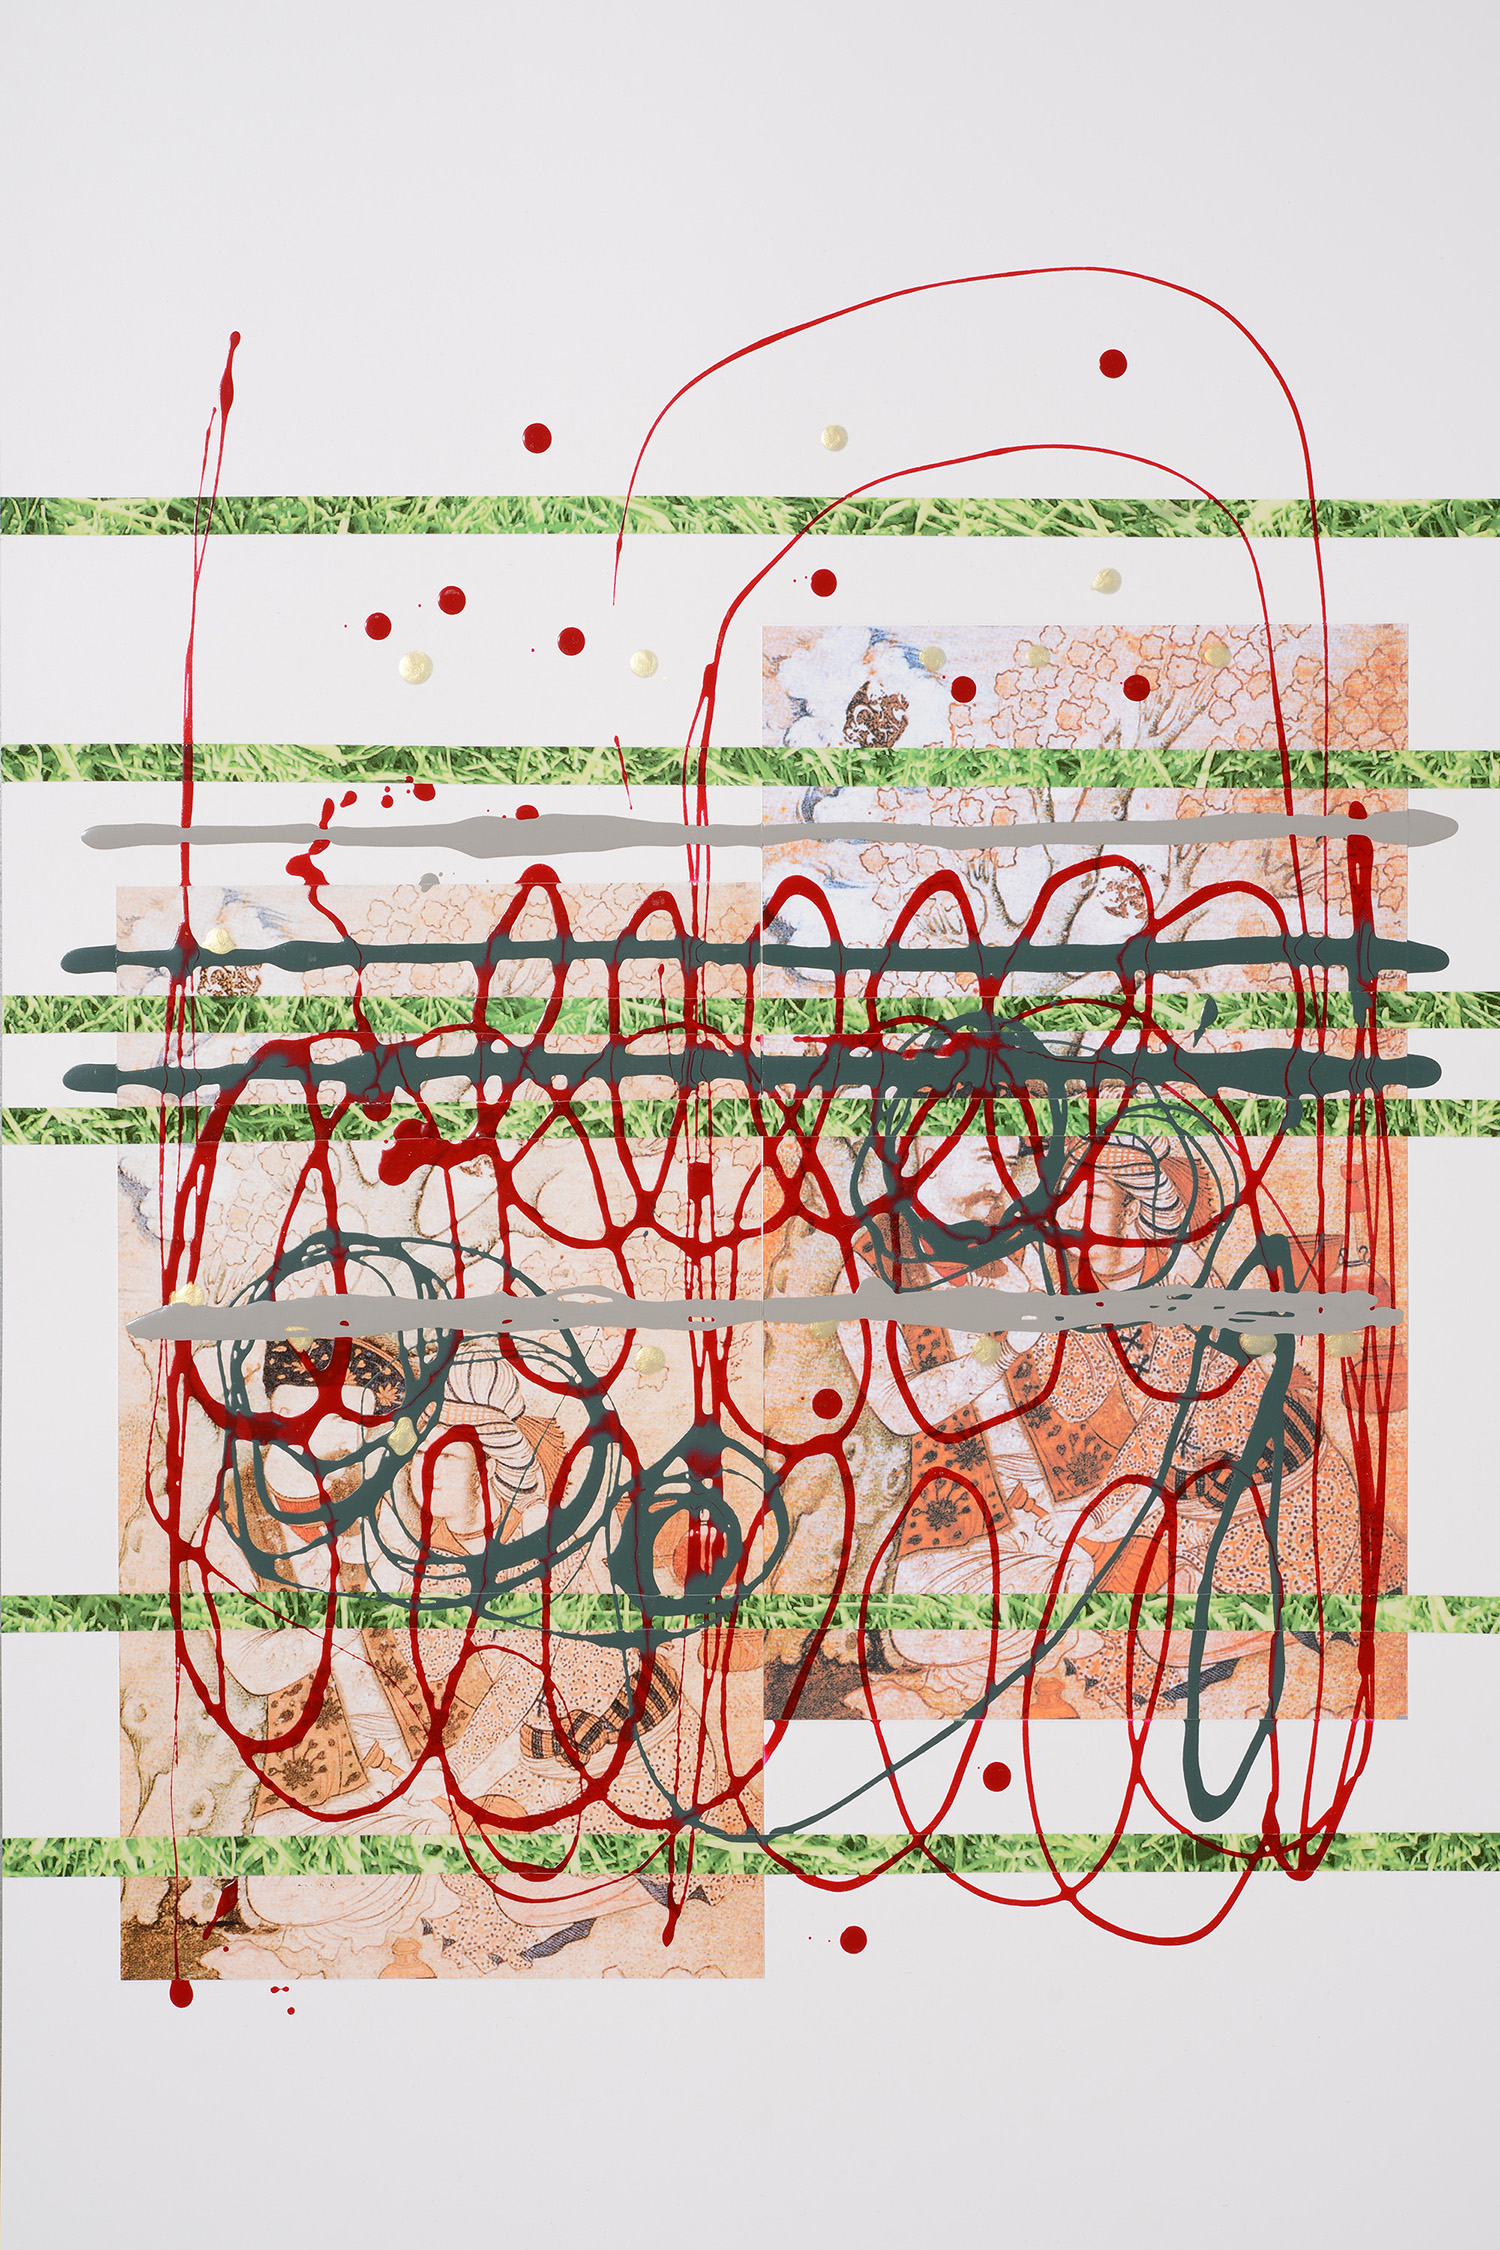 Markues, Secret Rendezvous, 2013, mixed media on paper, 60 x 40 cm.jpg